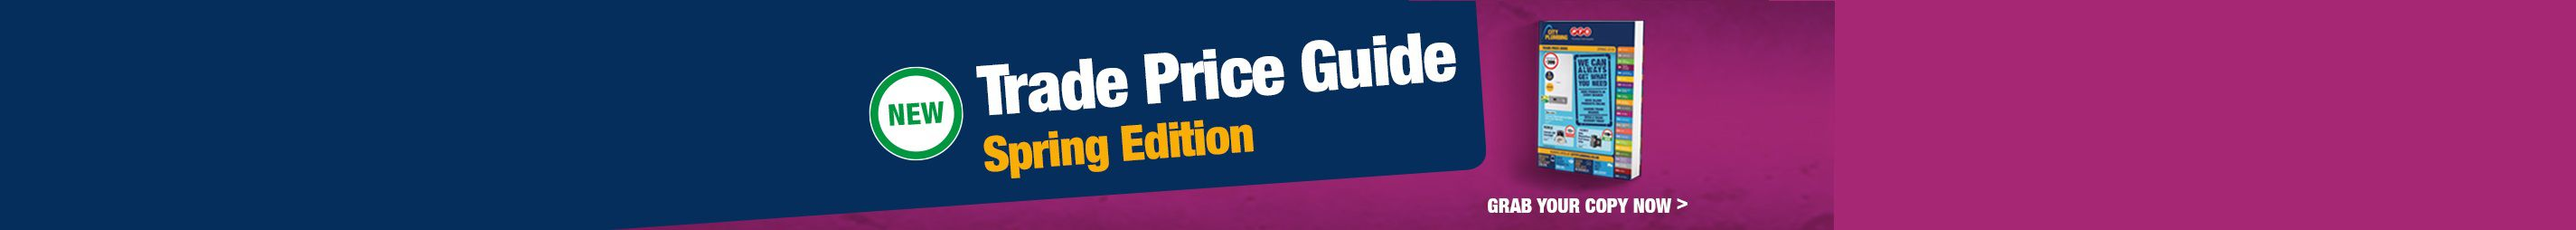 Trade Price Guide Out Now